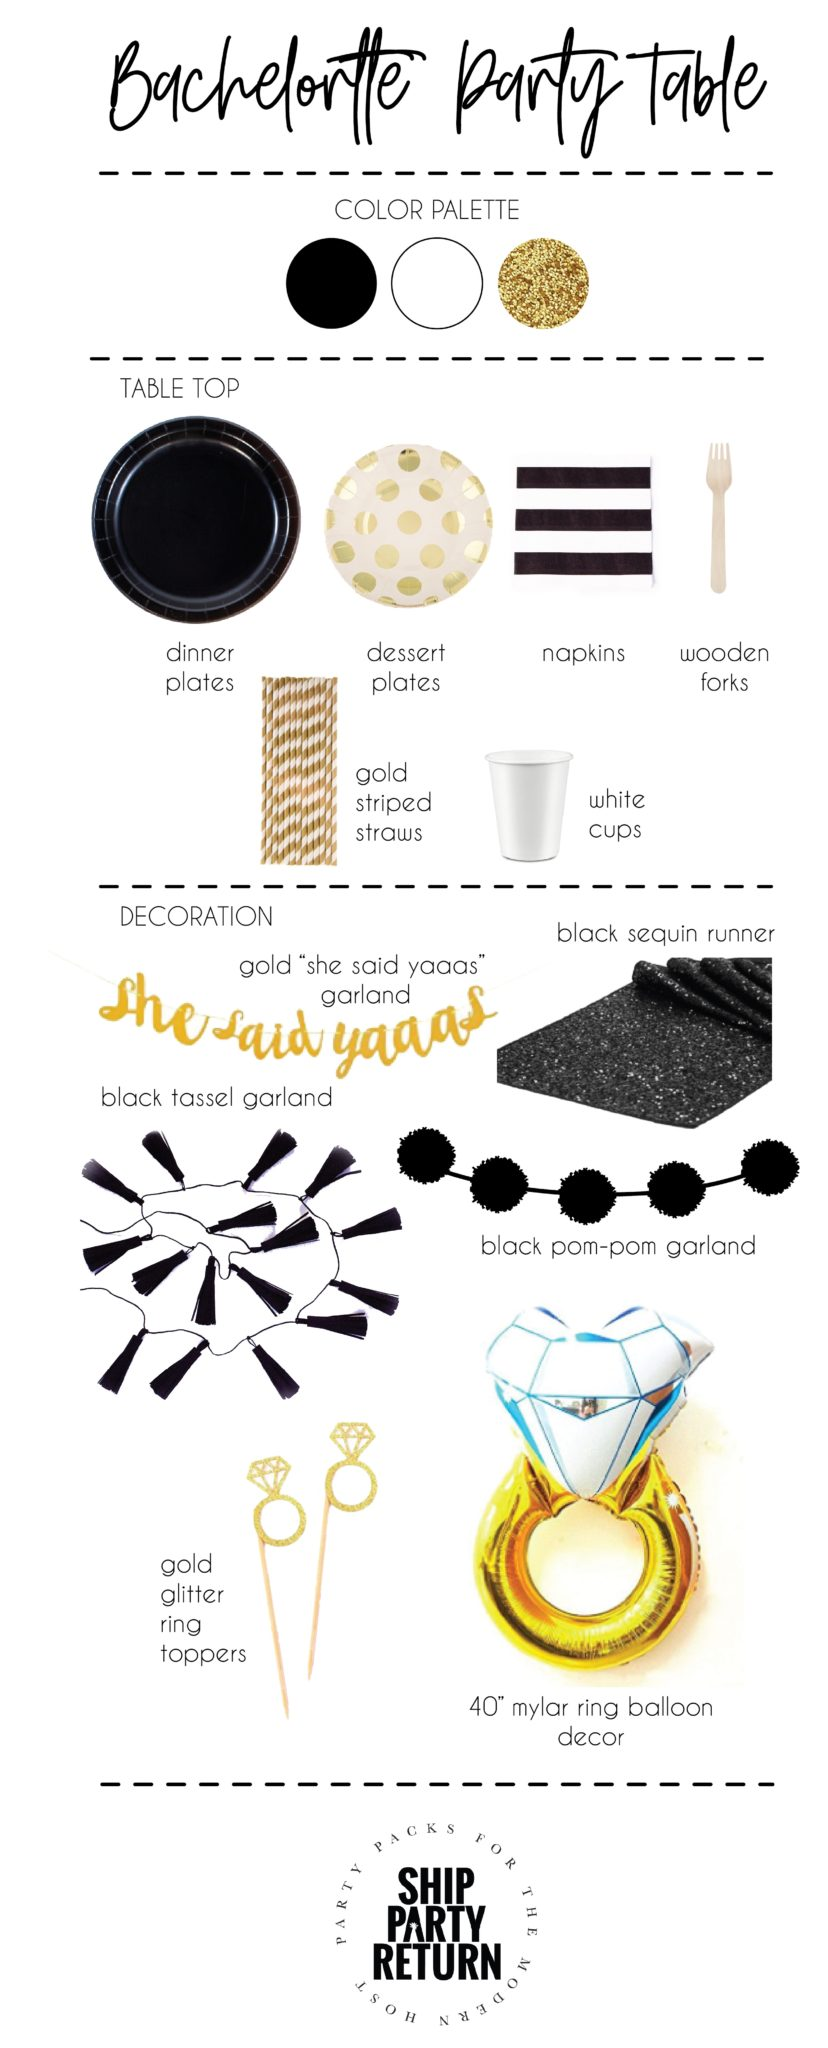 Bachelorette Party Mood Board, Black white and gold party decor, ship party return